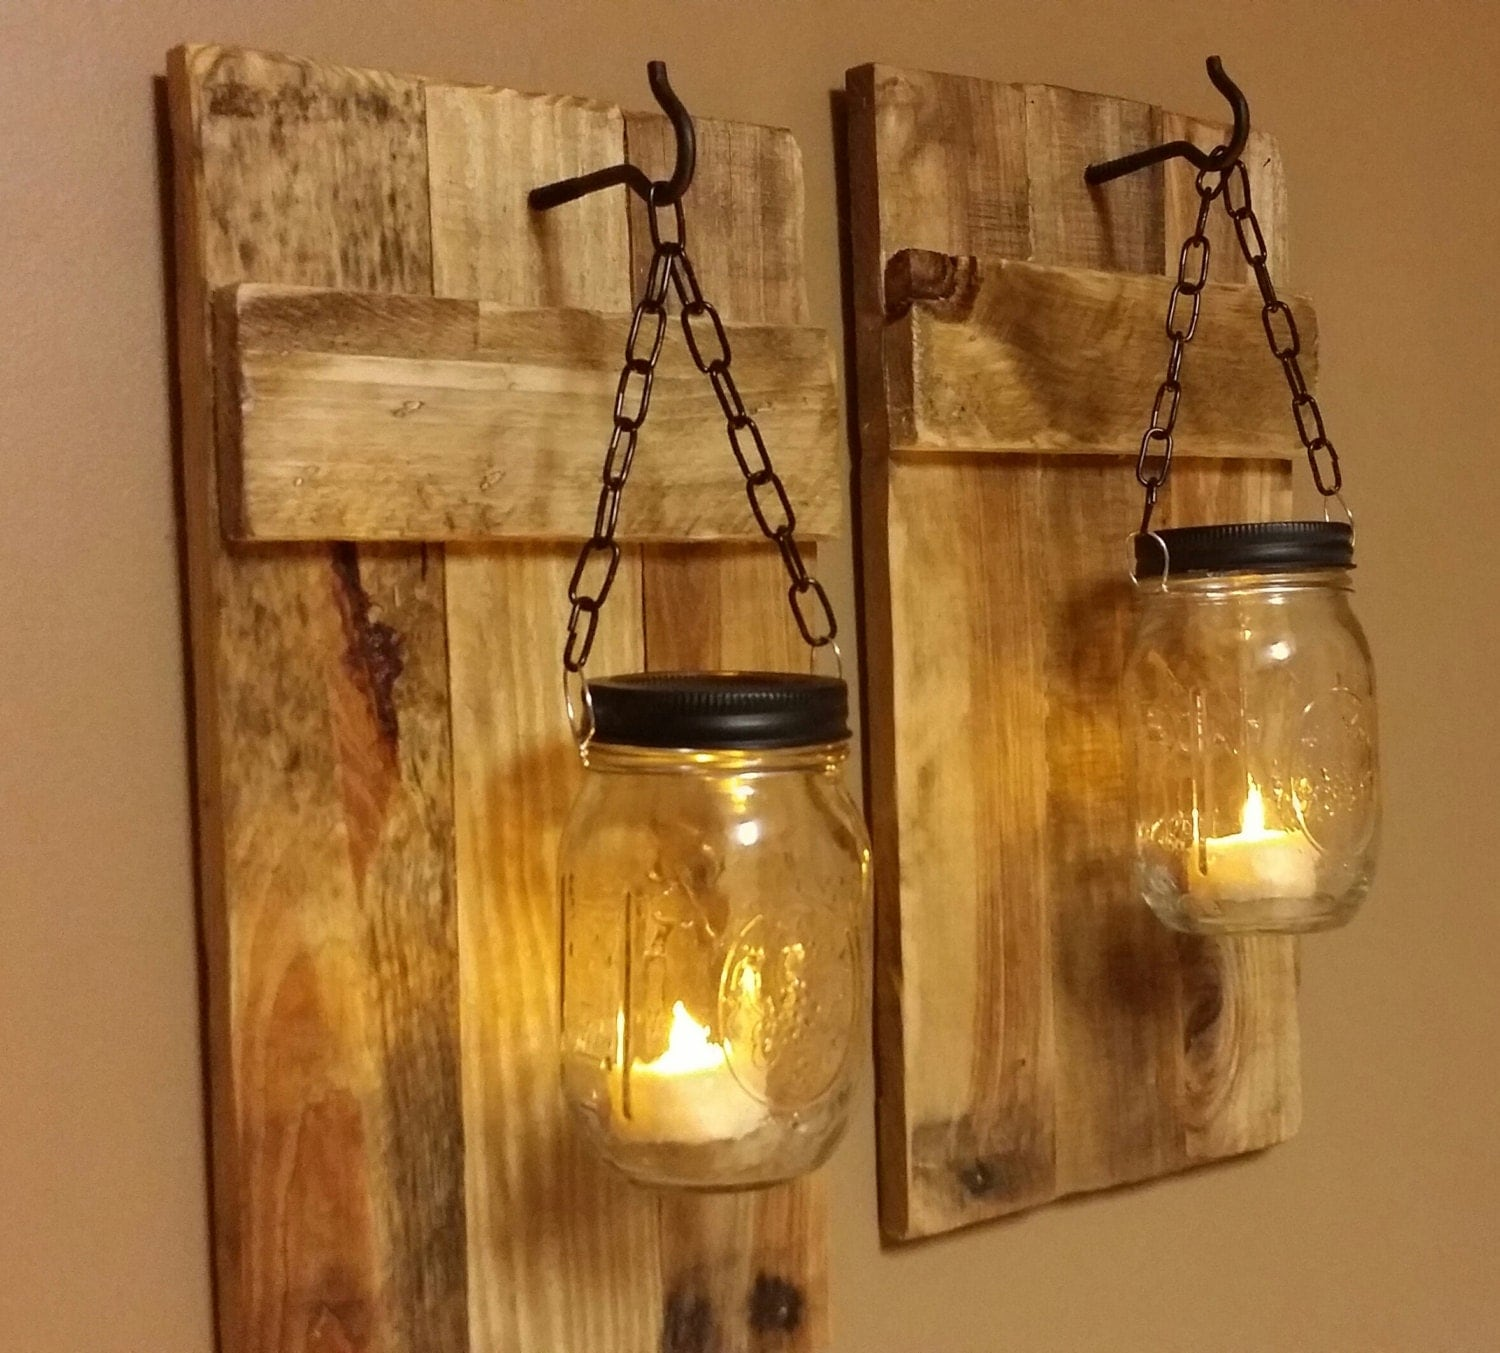 Like this item? - Mason Jar Candle Holder Rustic Decor Set Of 2 Rustic